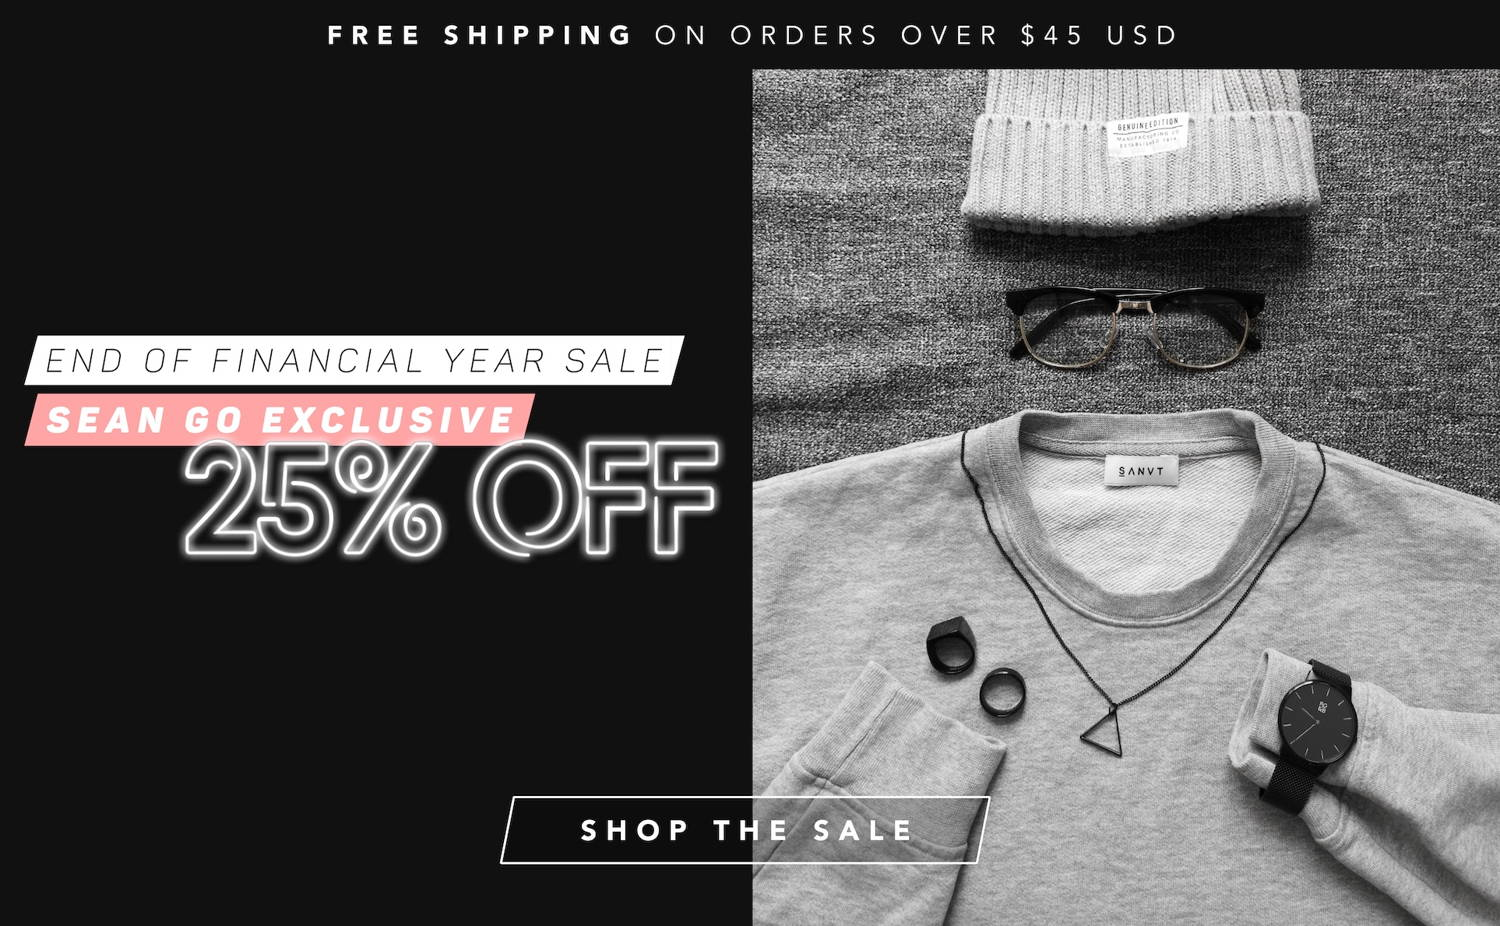 Sean Go 25% Off